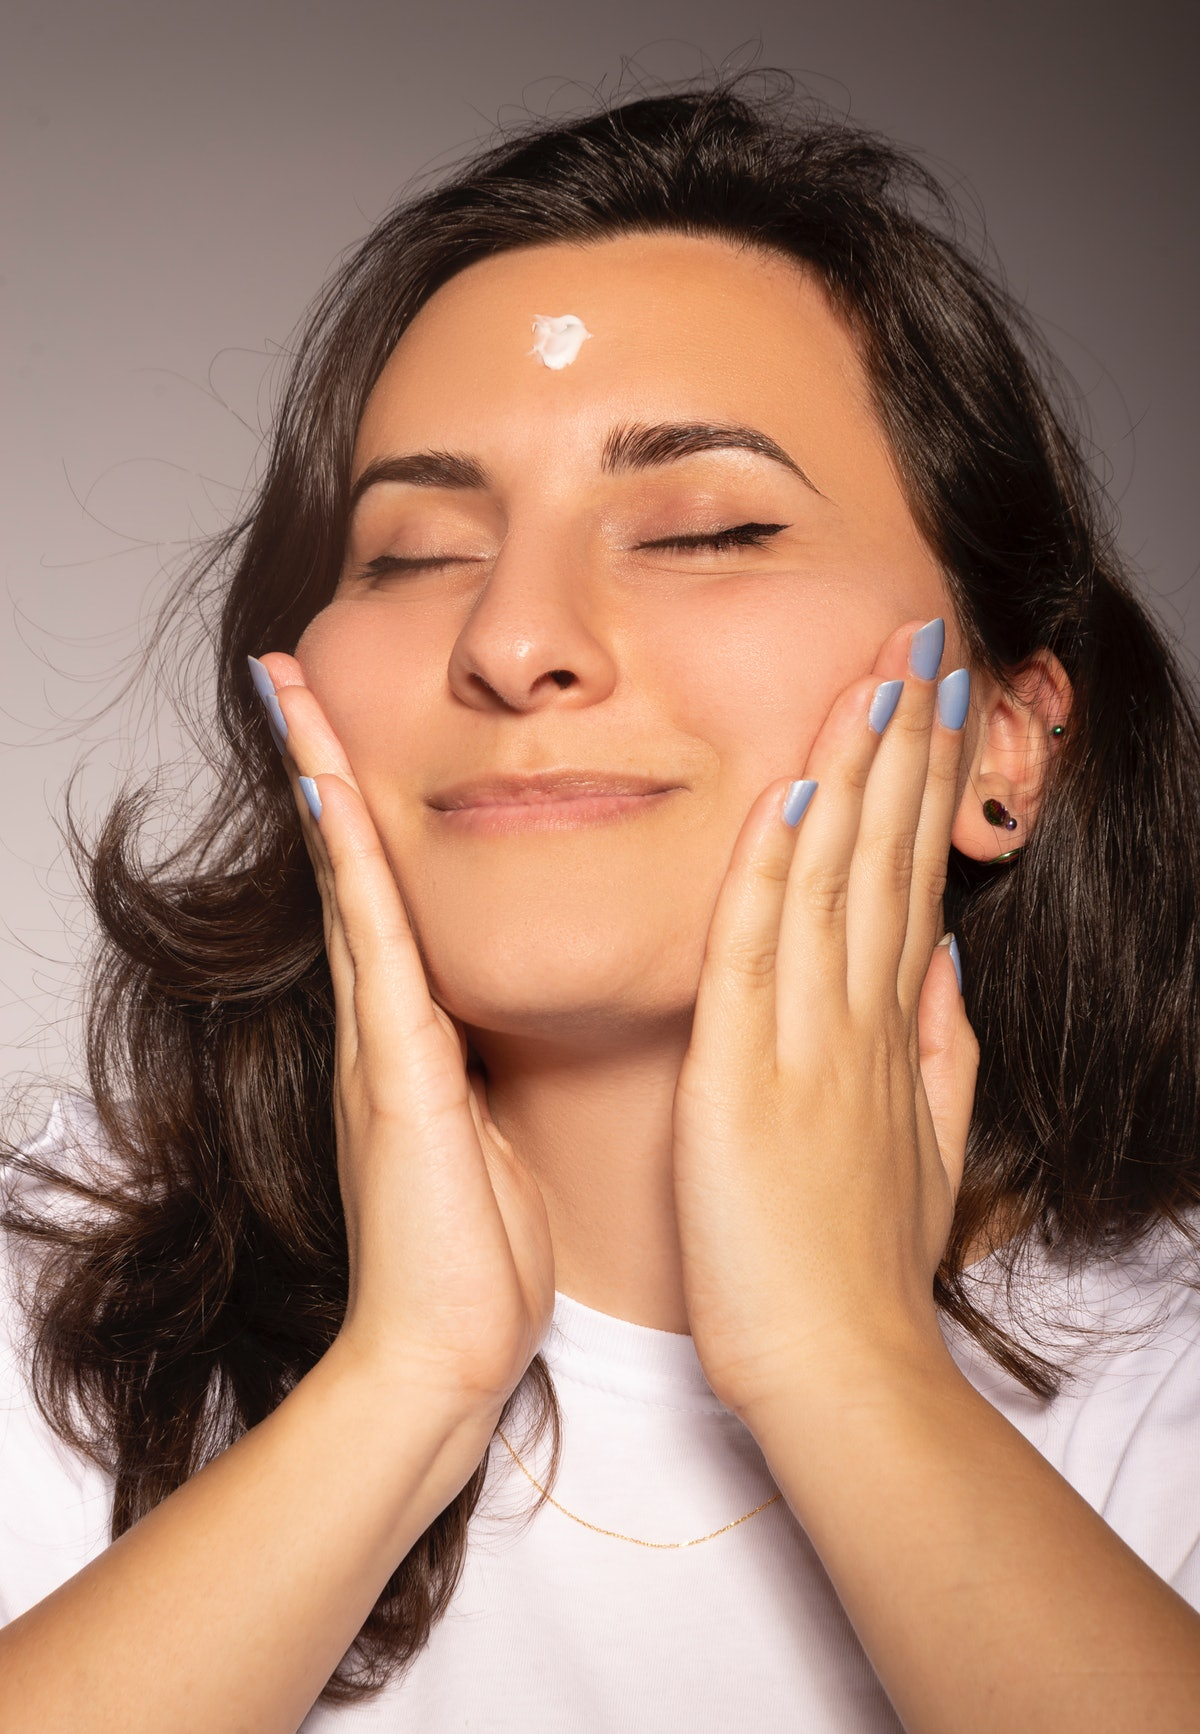 Perfectly beautiful woman wears skincare cream on her face in peace with her eyes closed.